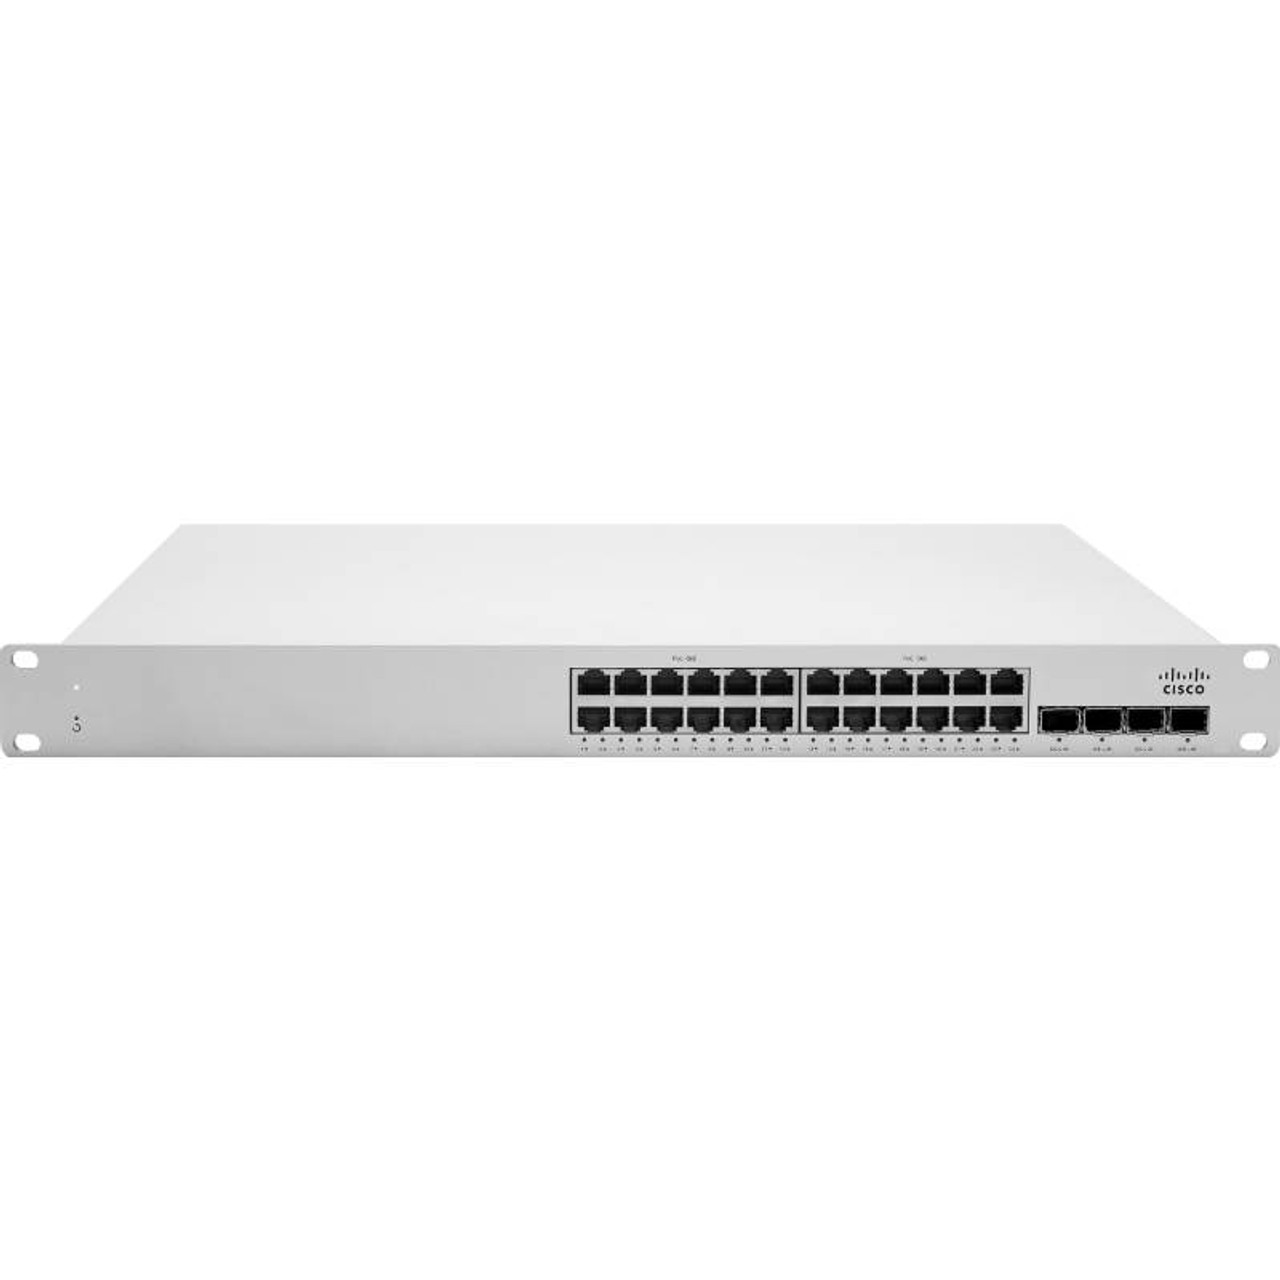 Image for Cisco Meraki MS250-24P L3 Stacking Cloud Managed 24 Port GigE 370W PoE Switch CX Computer Superstore